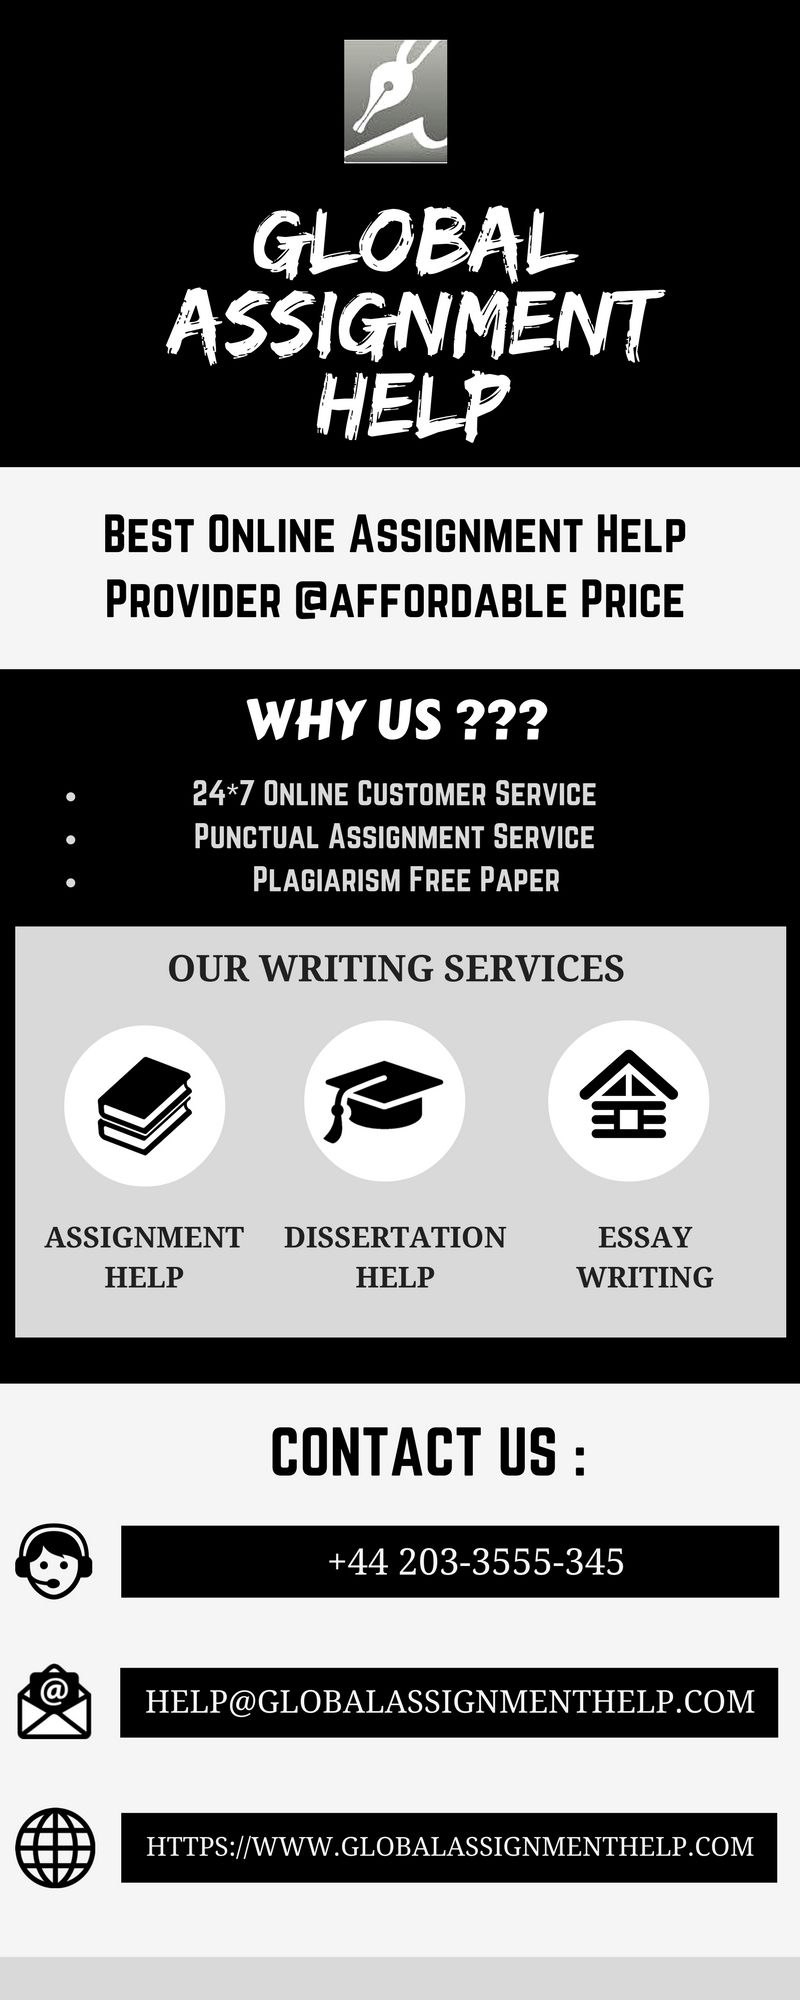 Exemplification Essay Abortion Should Be Legal Essay Studying In University Prompts